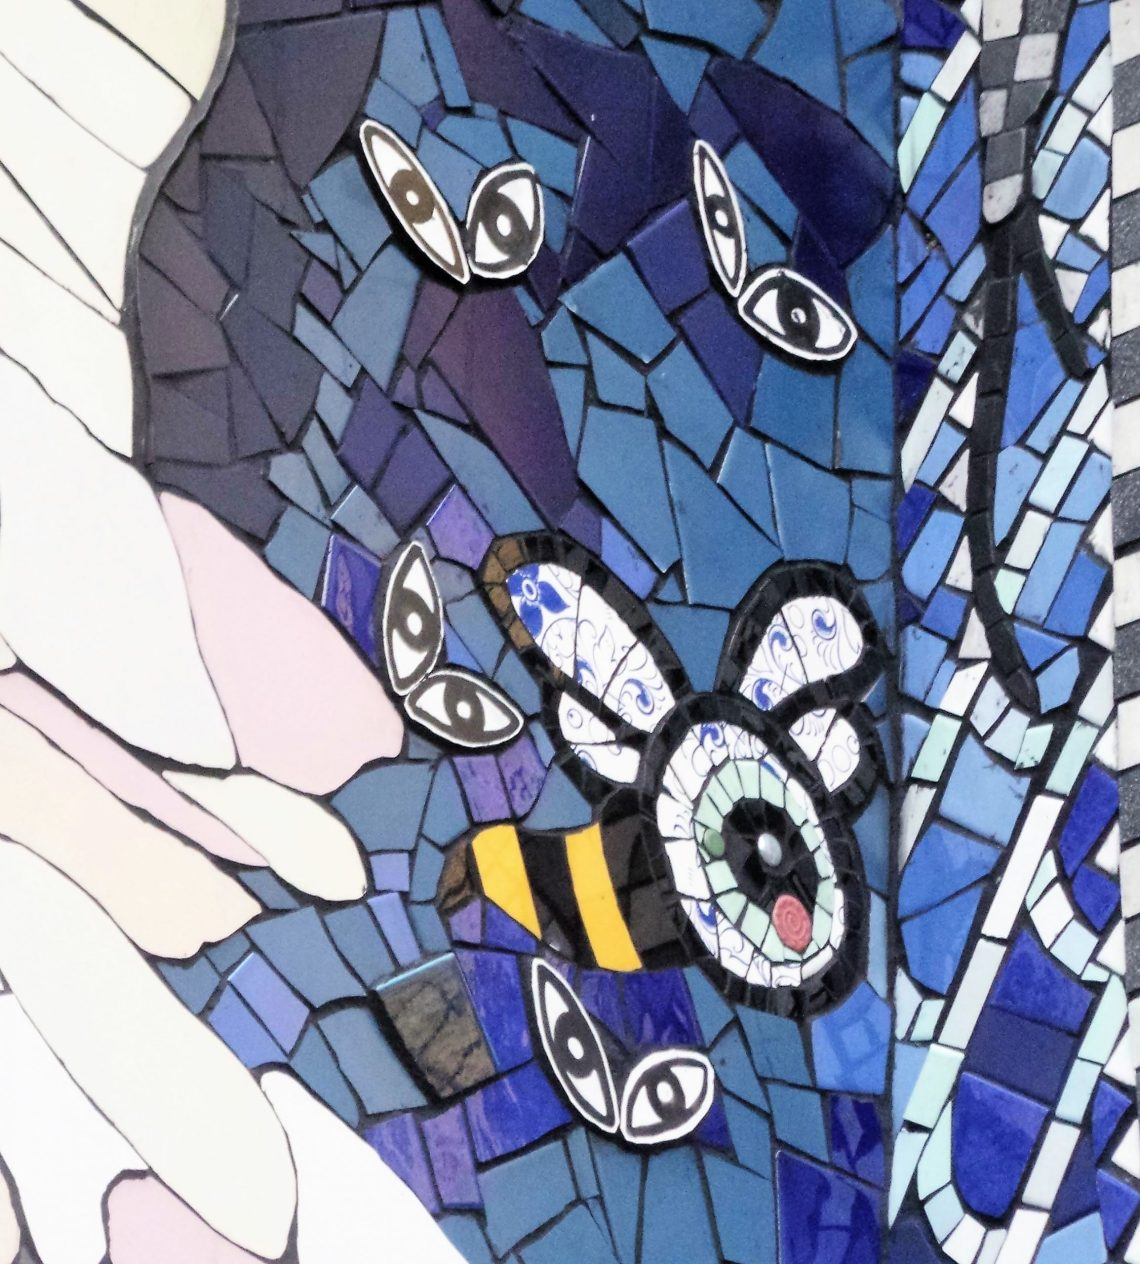 Butterfly eyes by Nevanka Pavic on the front of the mosaic house